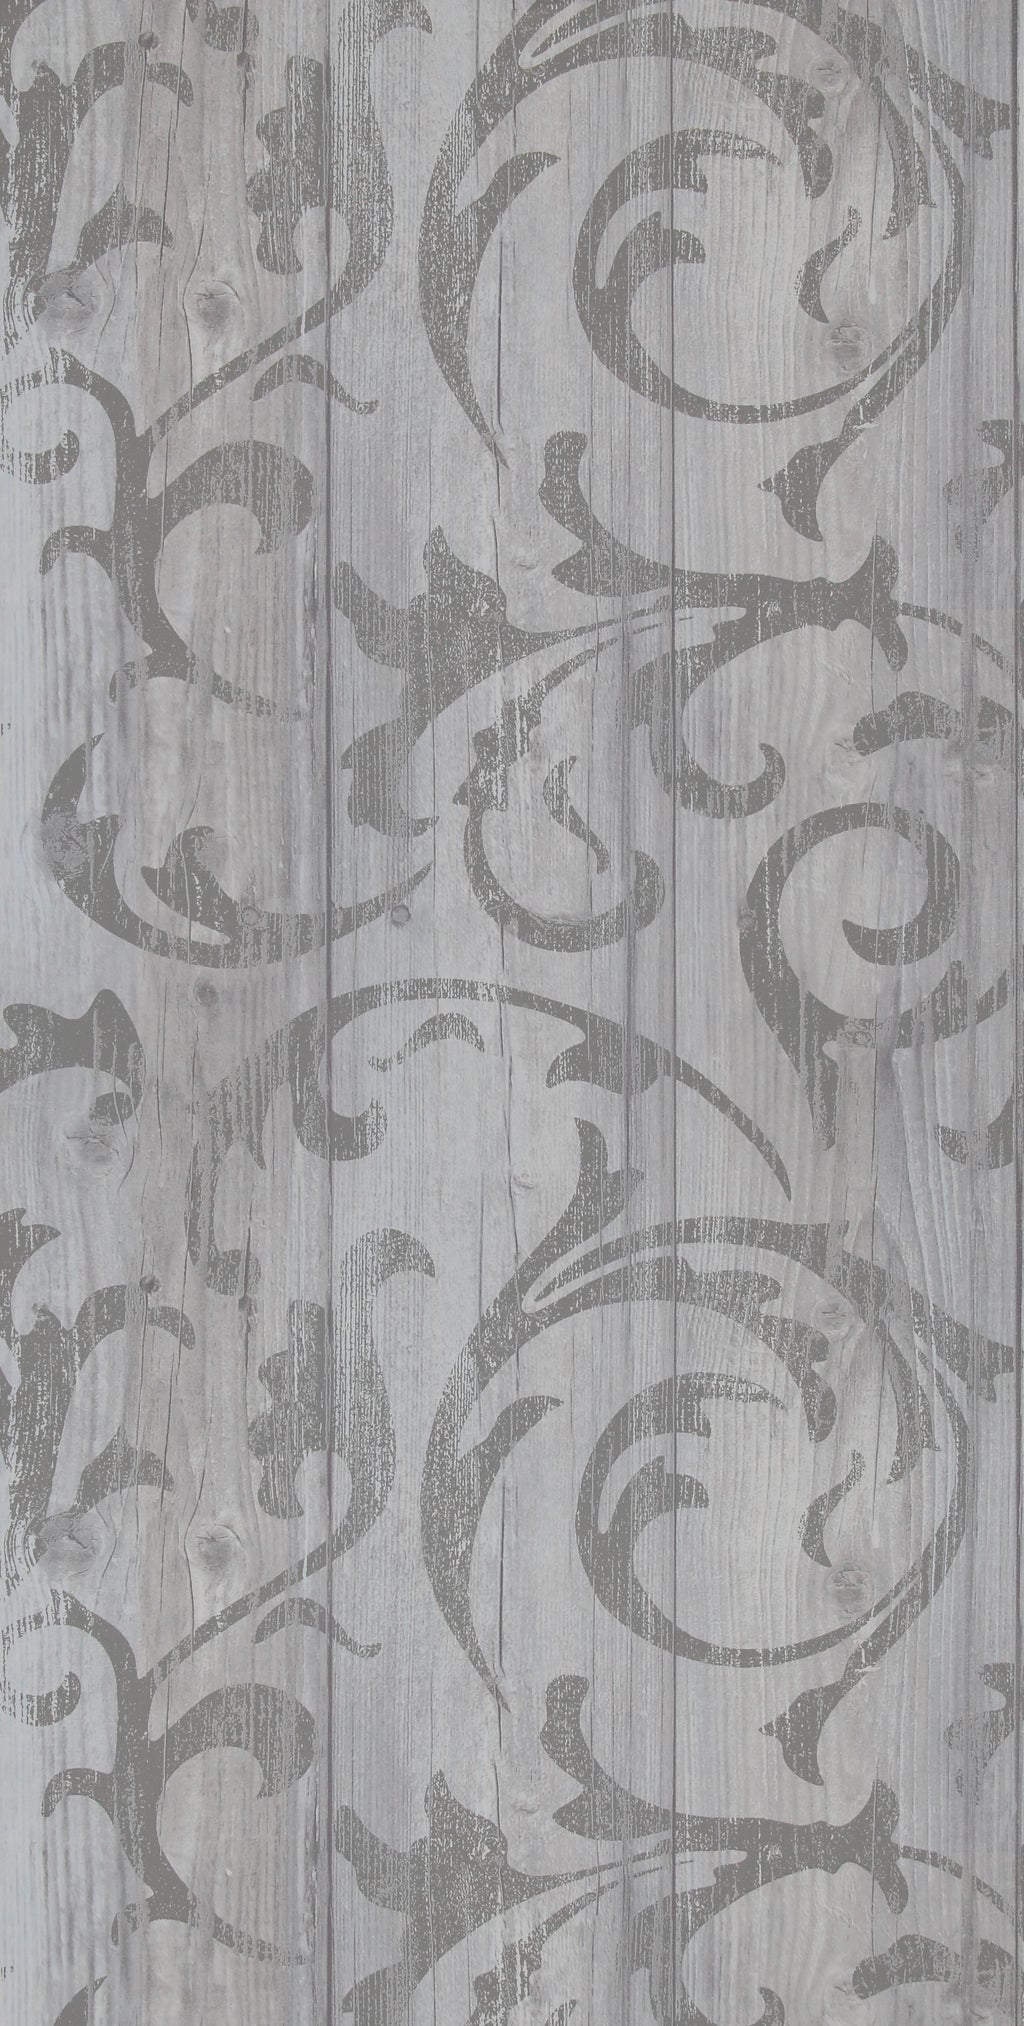 Medium Grey Twisted Wood R2569